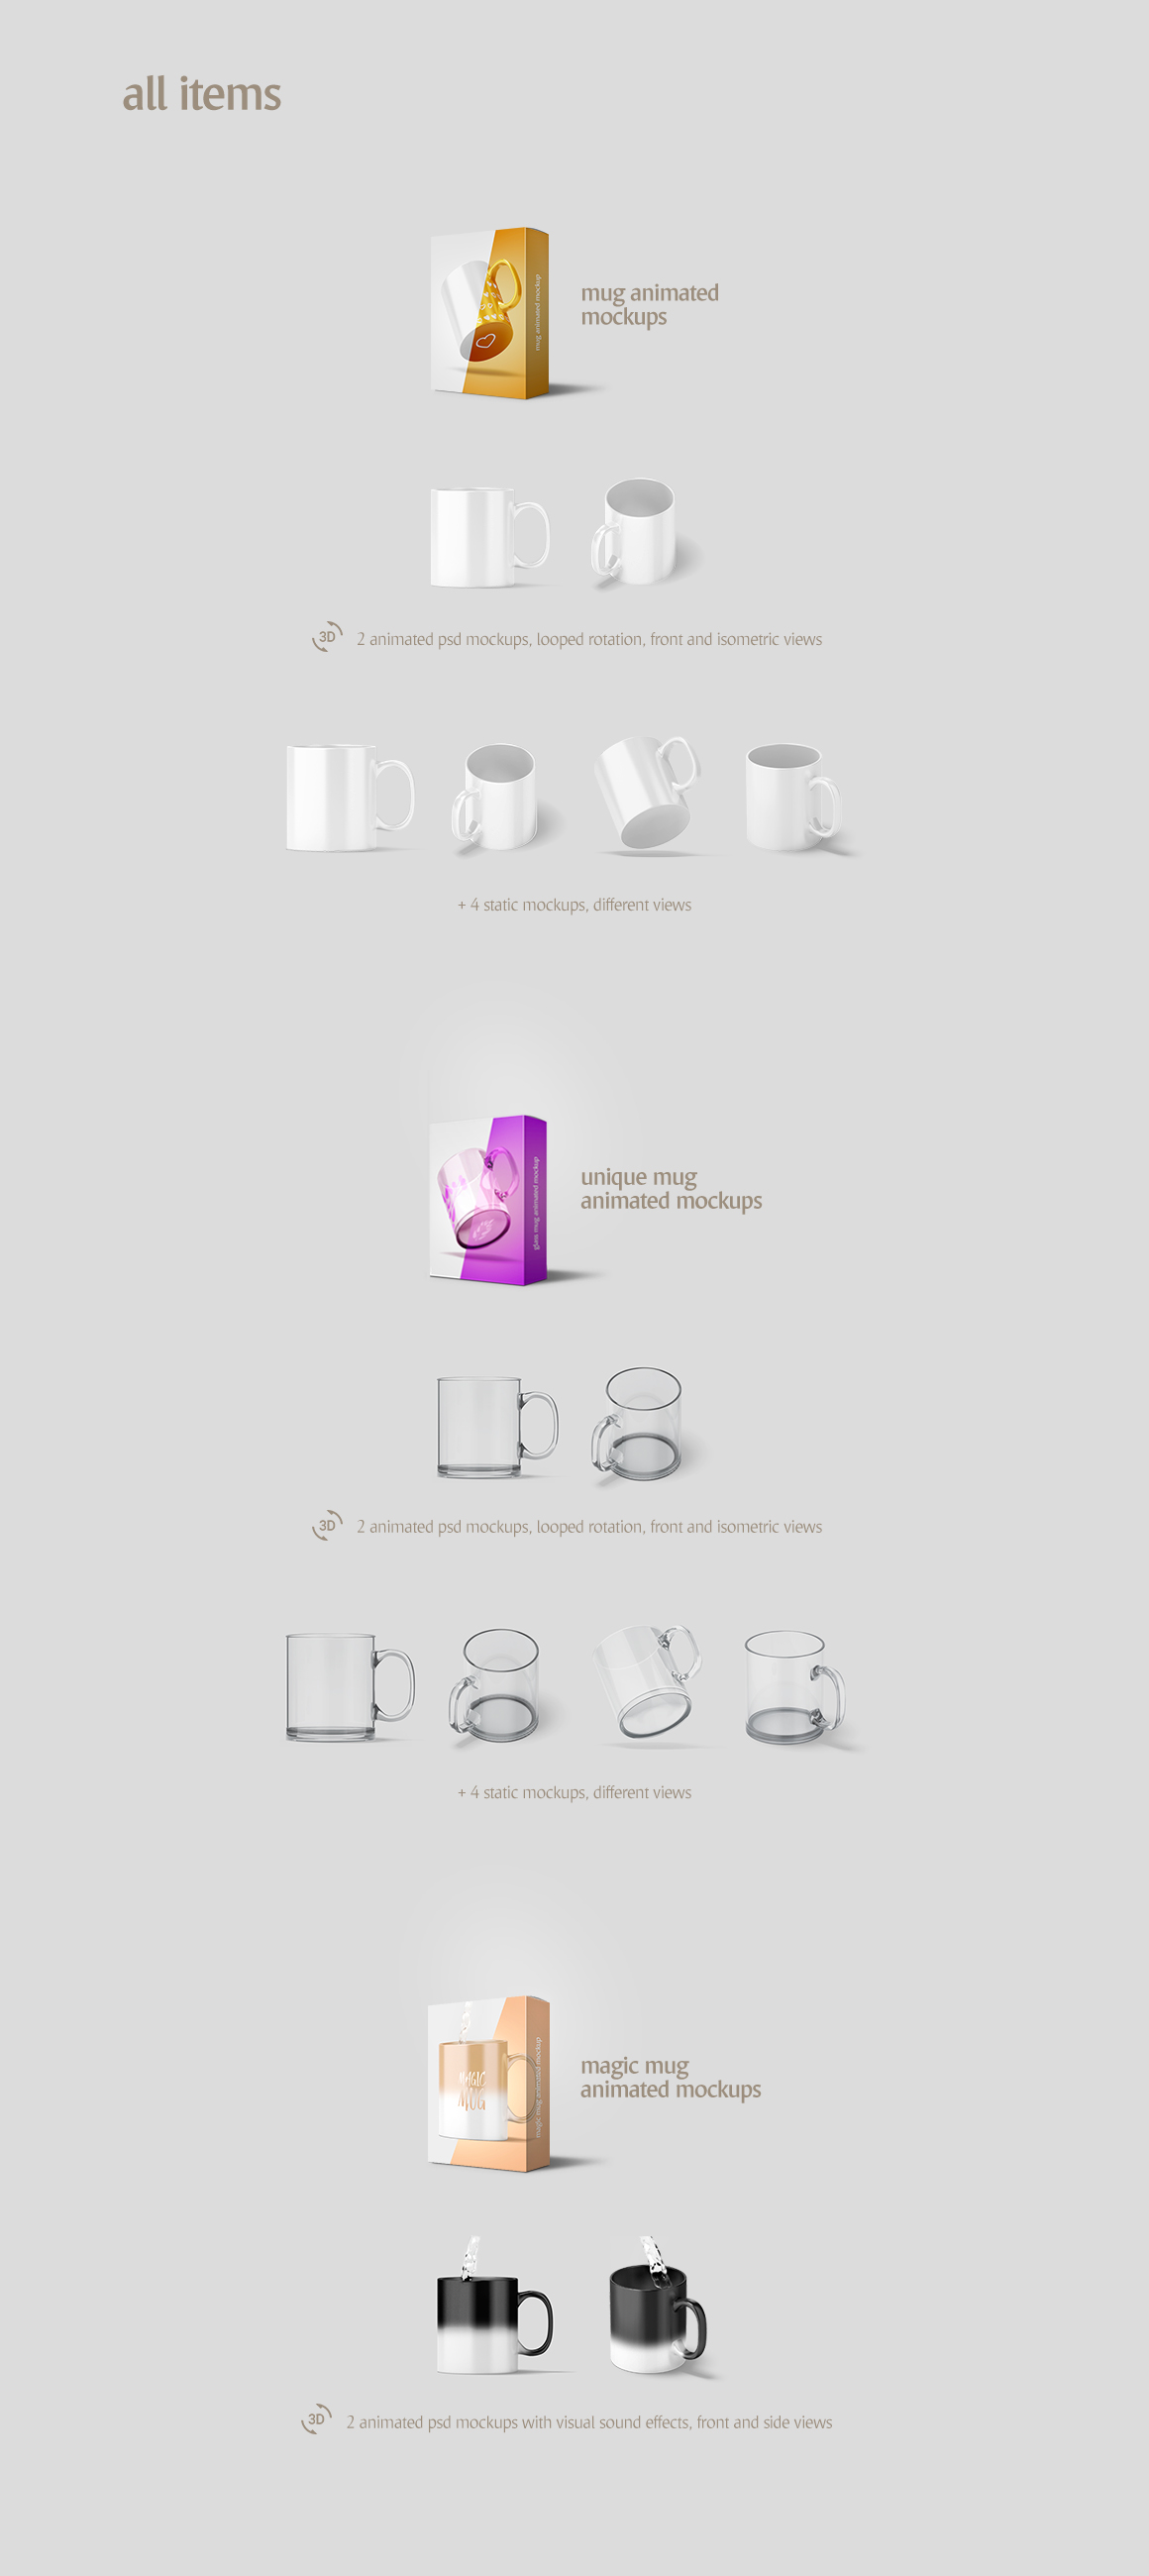 Mug Animated Mockups Bundle example image 2